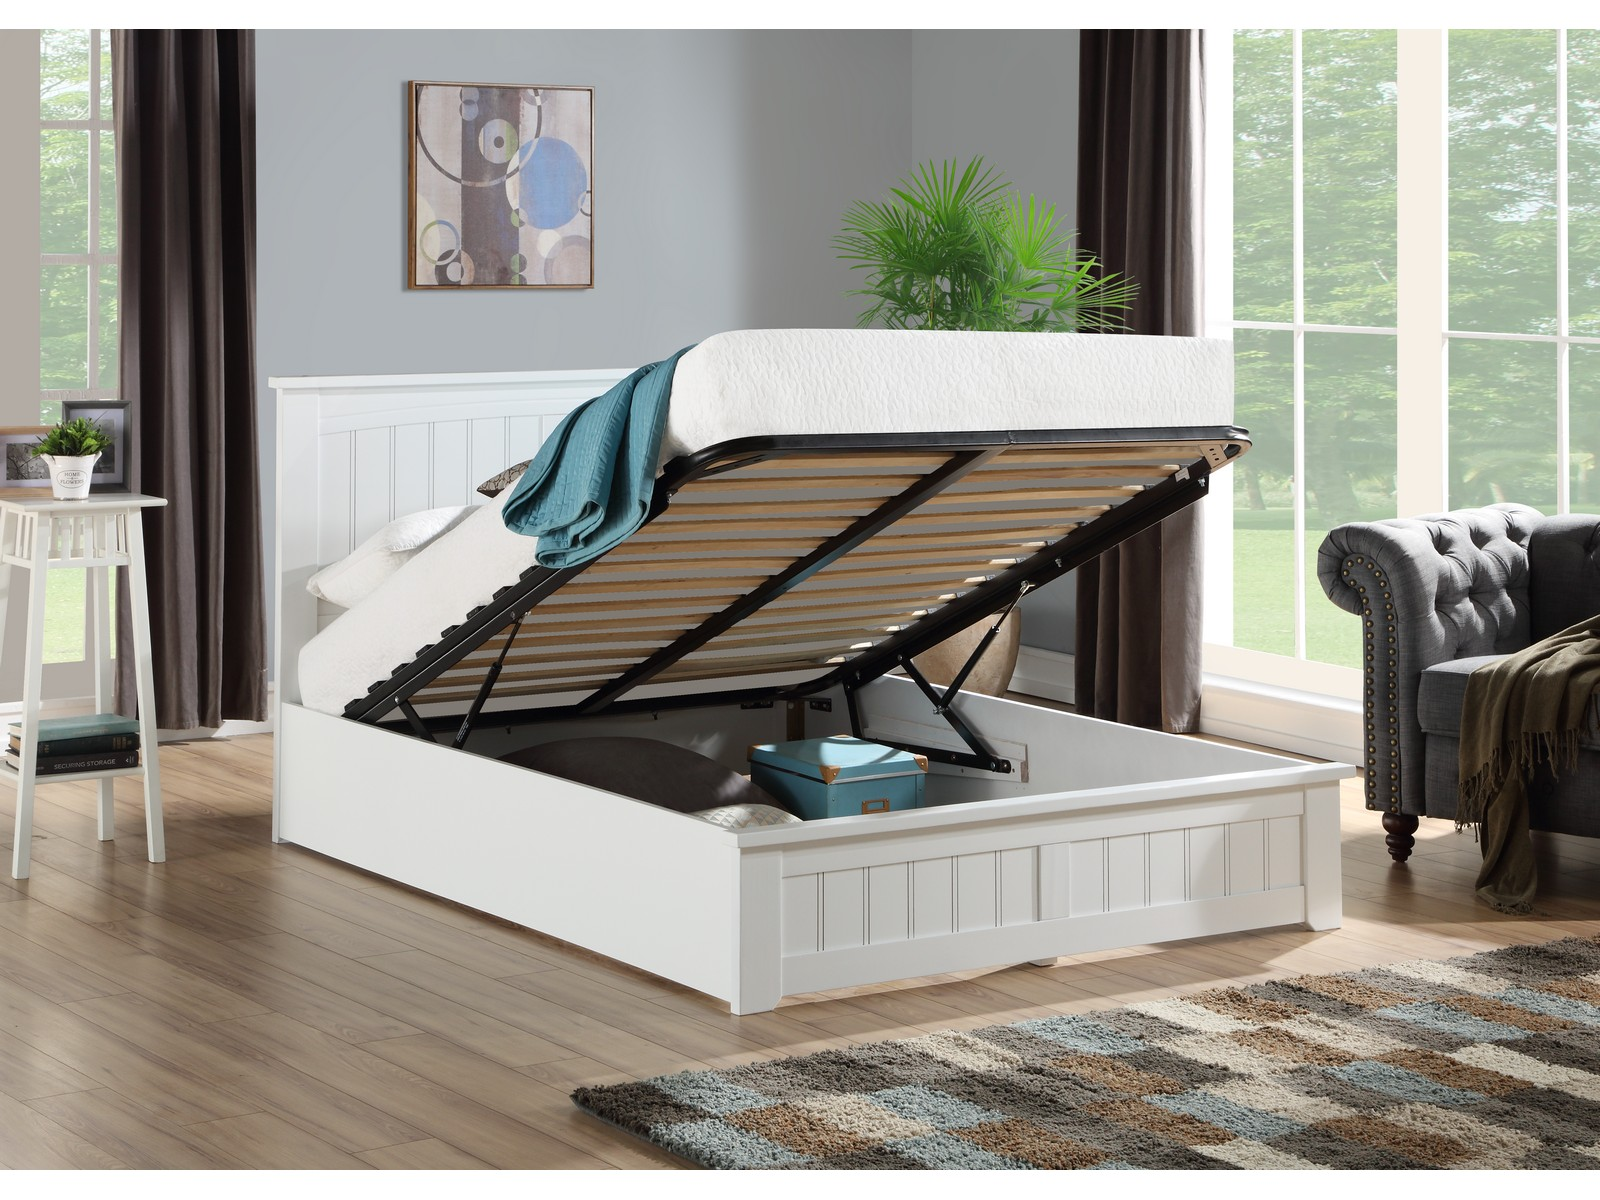 Picture of: Venice Elegant Solid Wooden Ottoman Storage Bed White Wood 5ft Kingsize Ebay